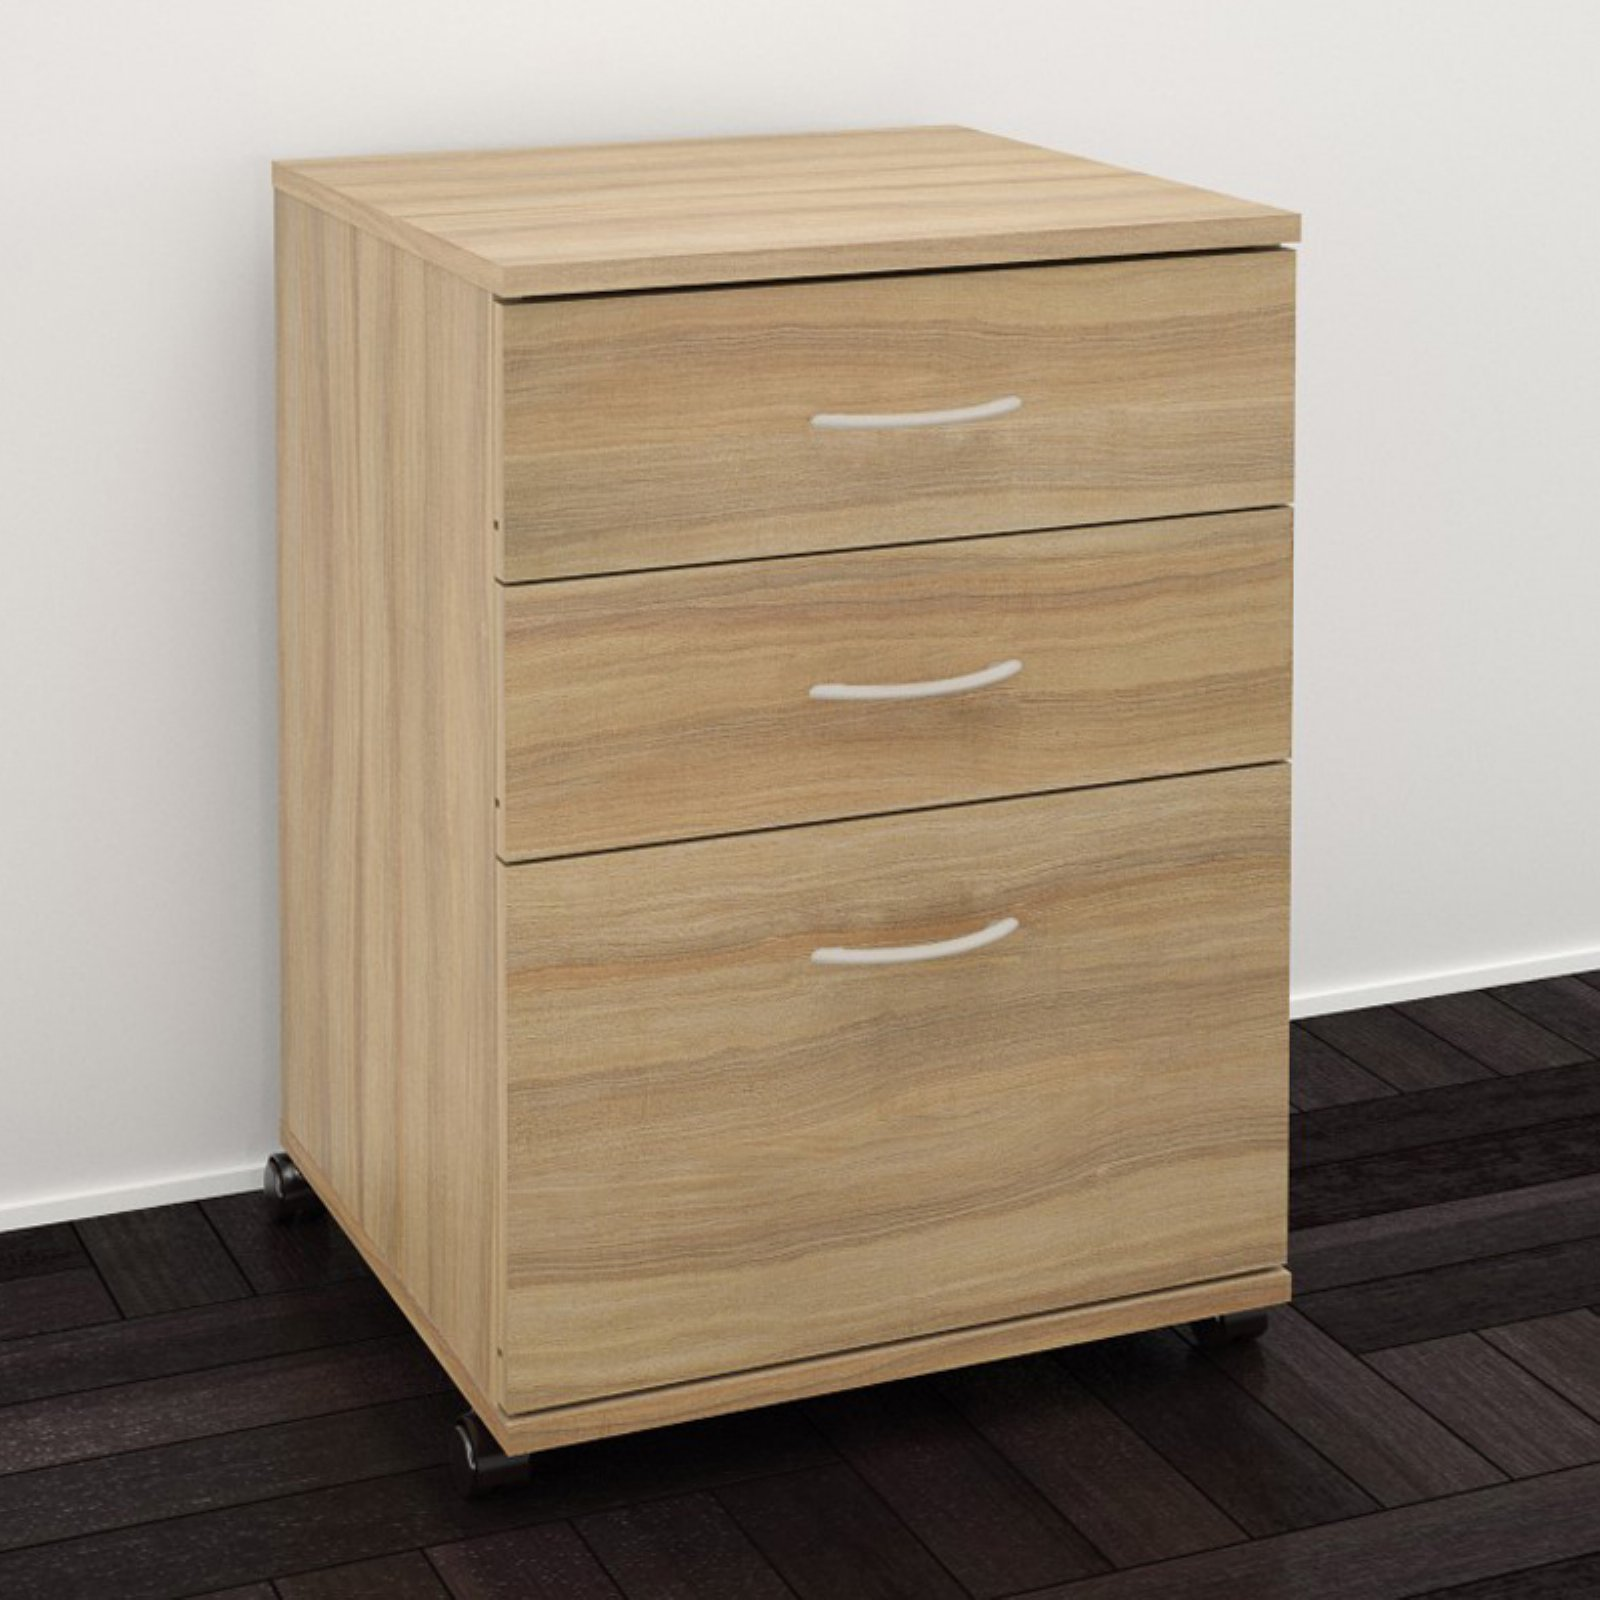 Nexera 3 Drawer Vertical Wood Filing Cabinet, Multple finishes